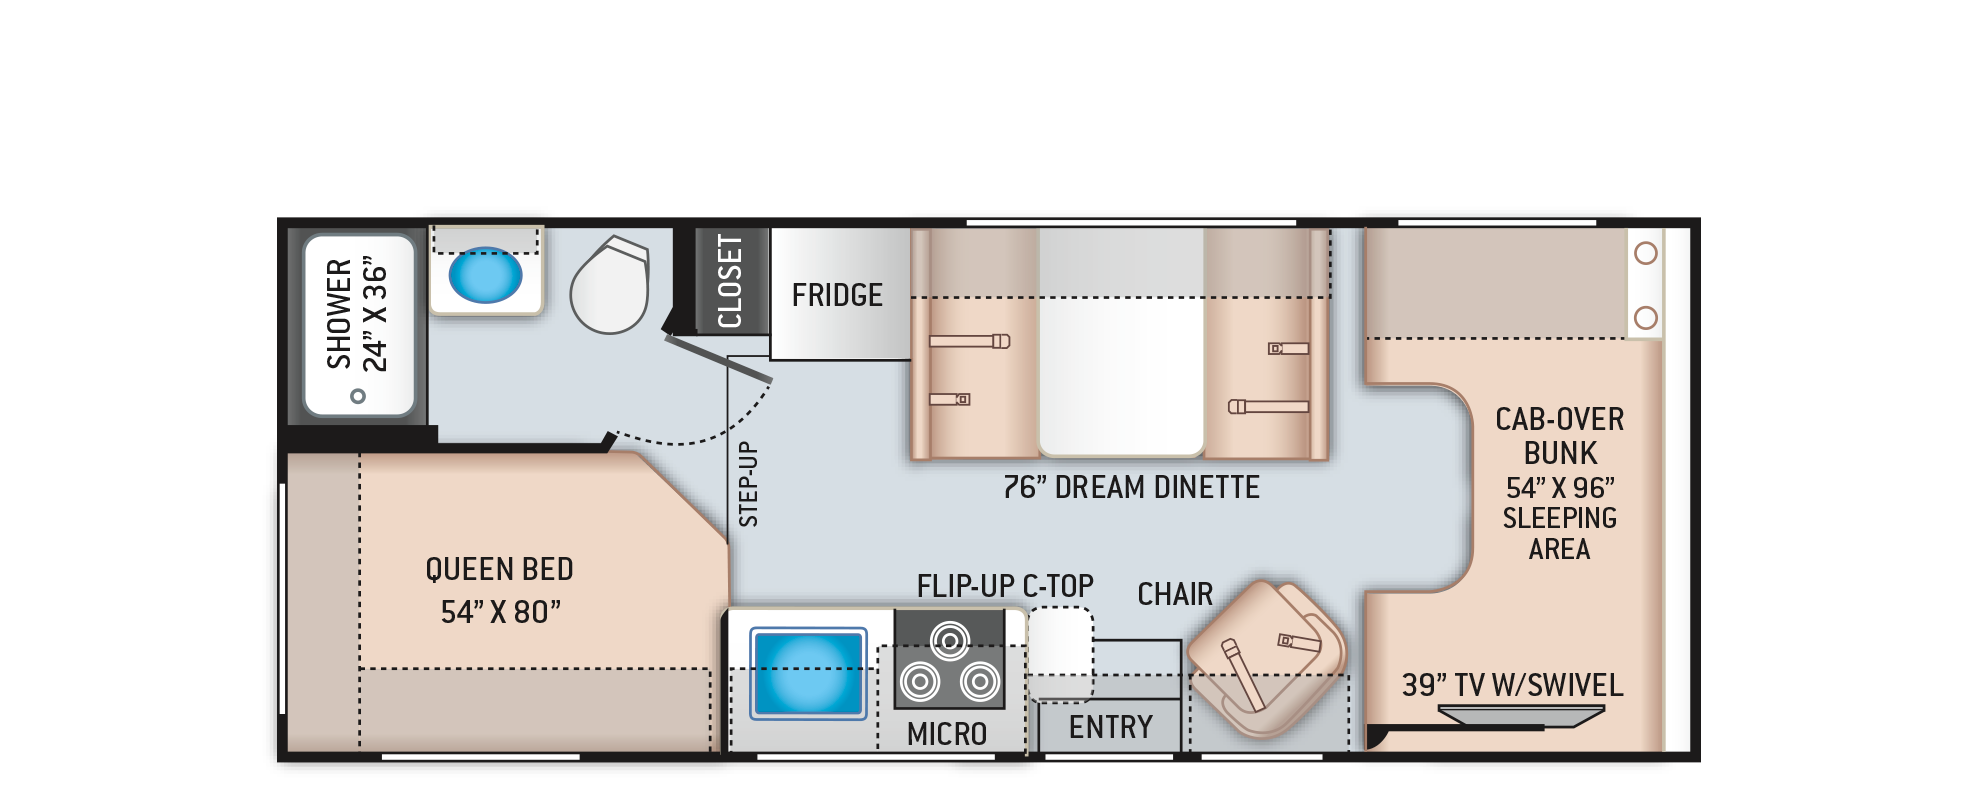 Freedom Elite Class C RV 23H Floor Plan